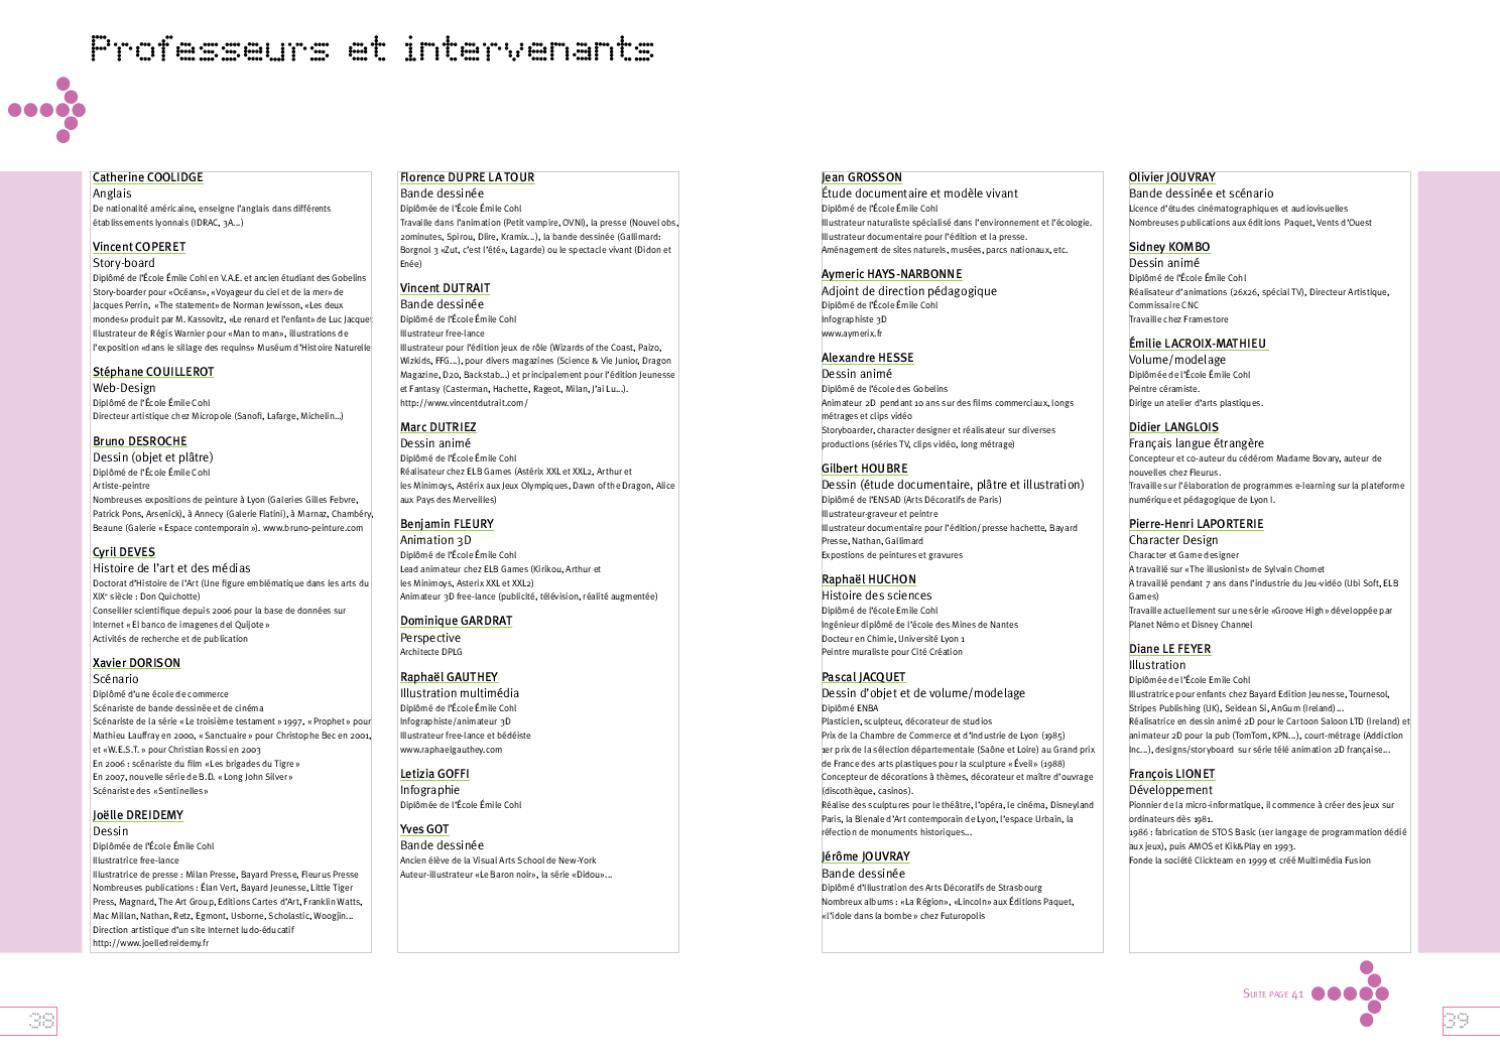 documentation ecole emile cohlaymeric hays-narbonne - issuu